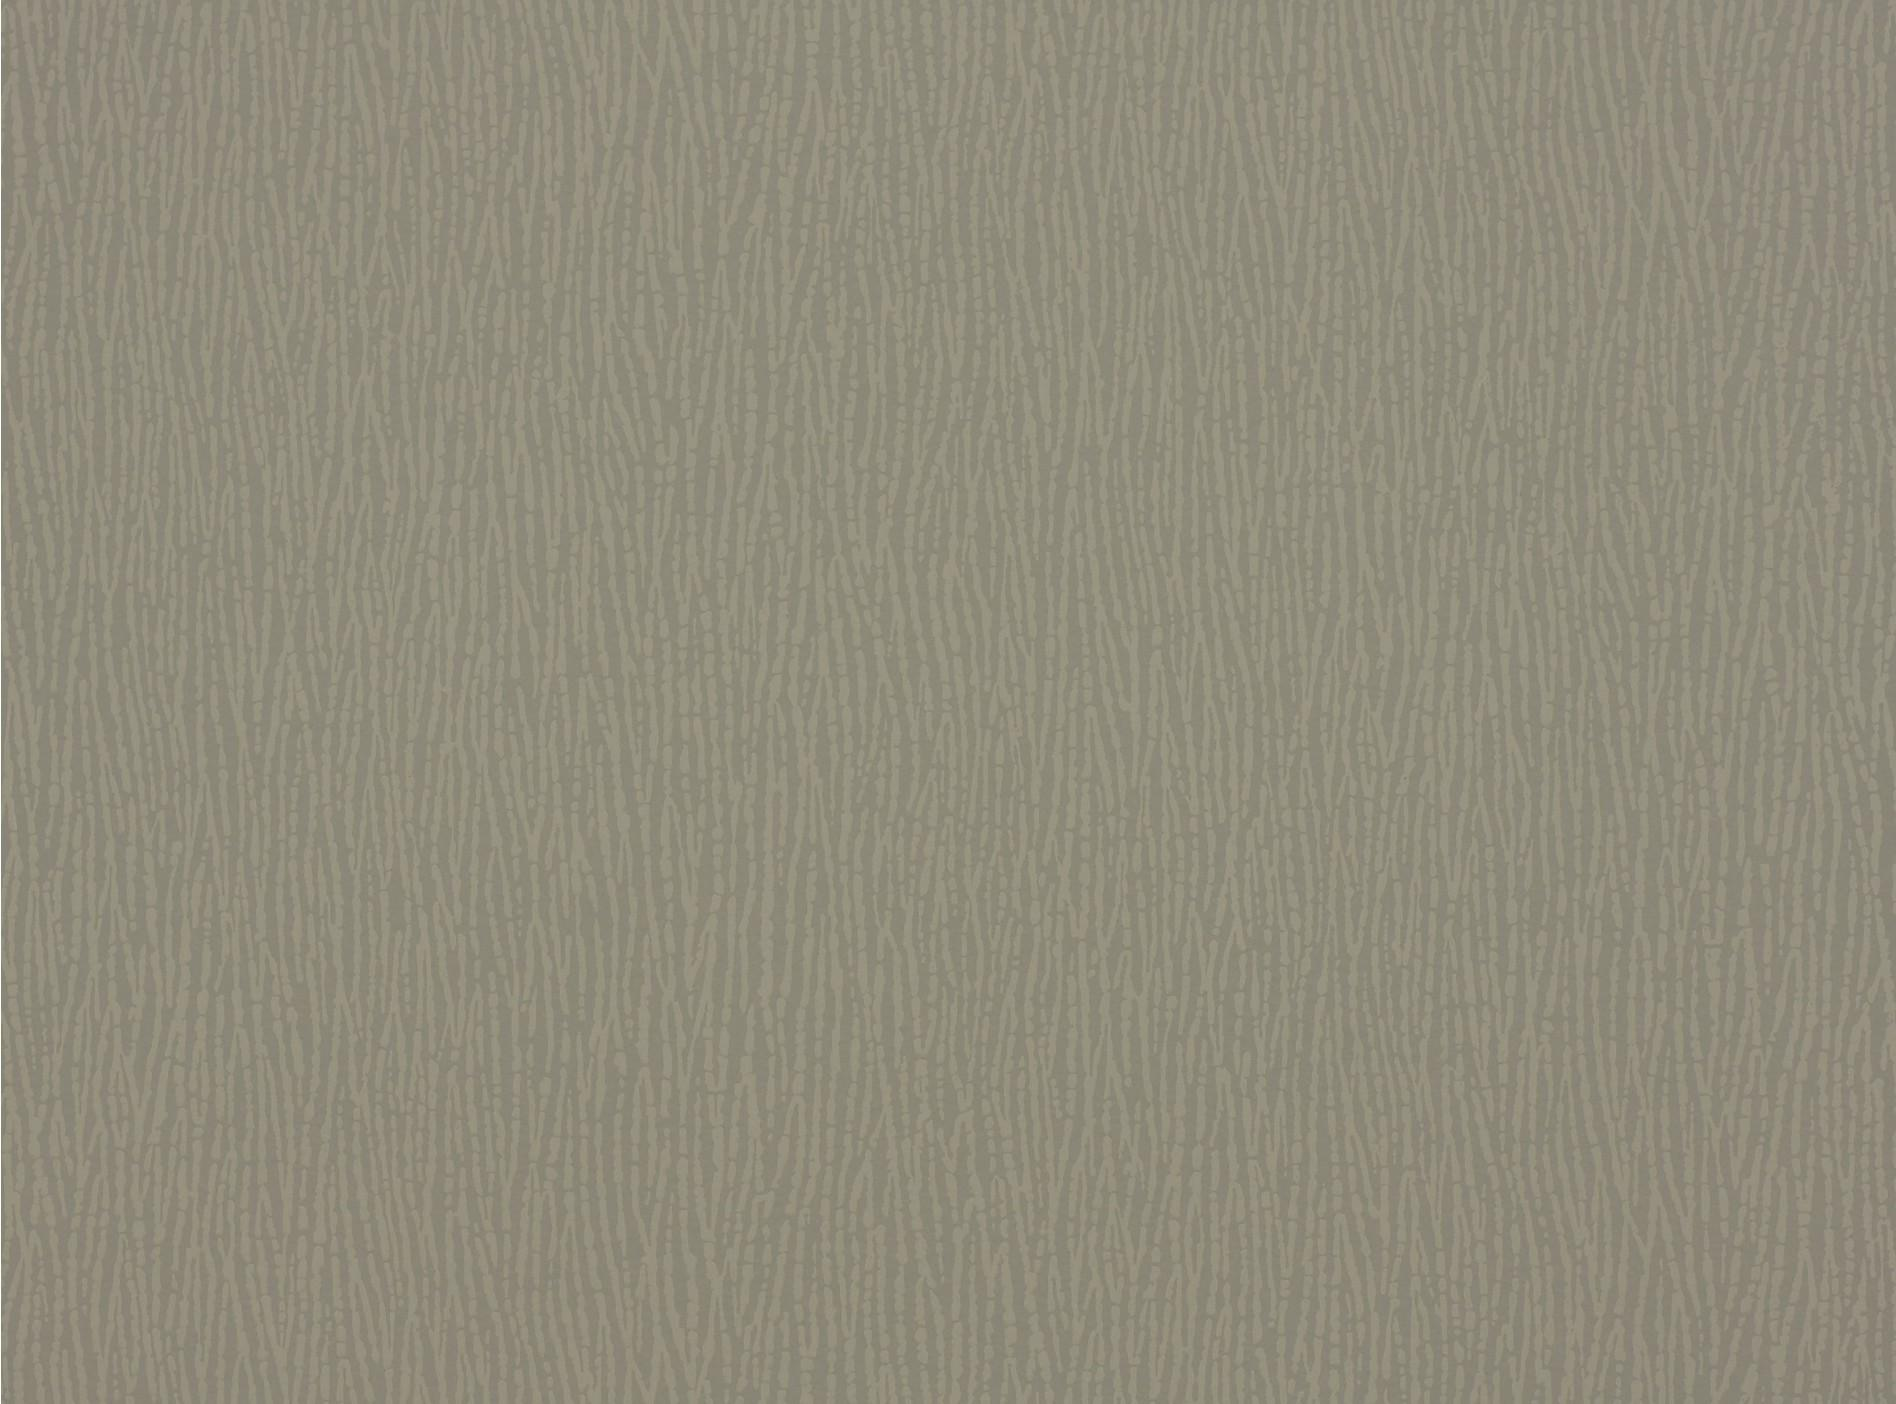 Romo Folia Wallpaper Romo Folia Collection Ripple